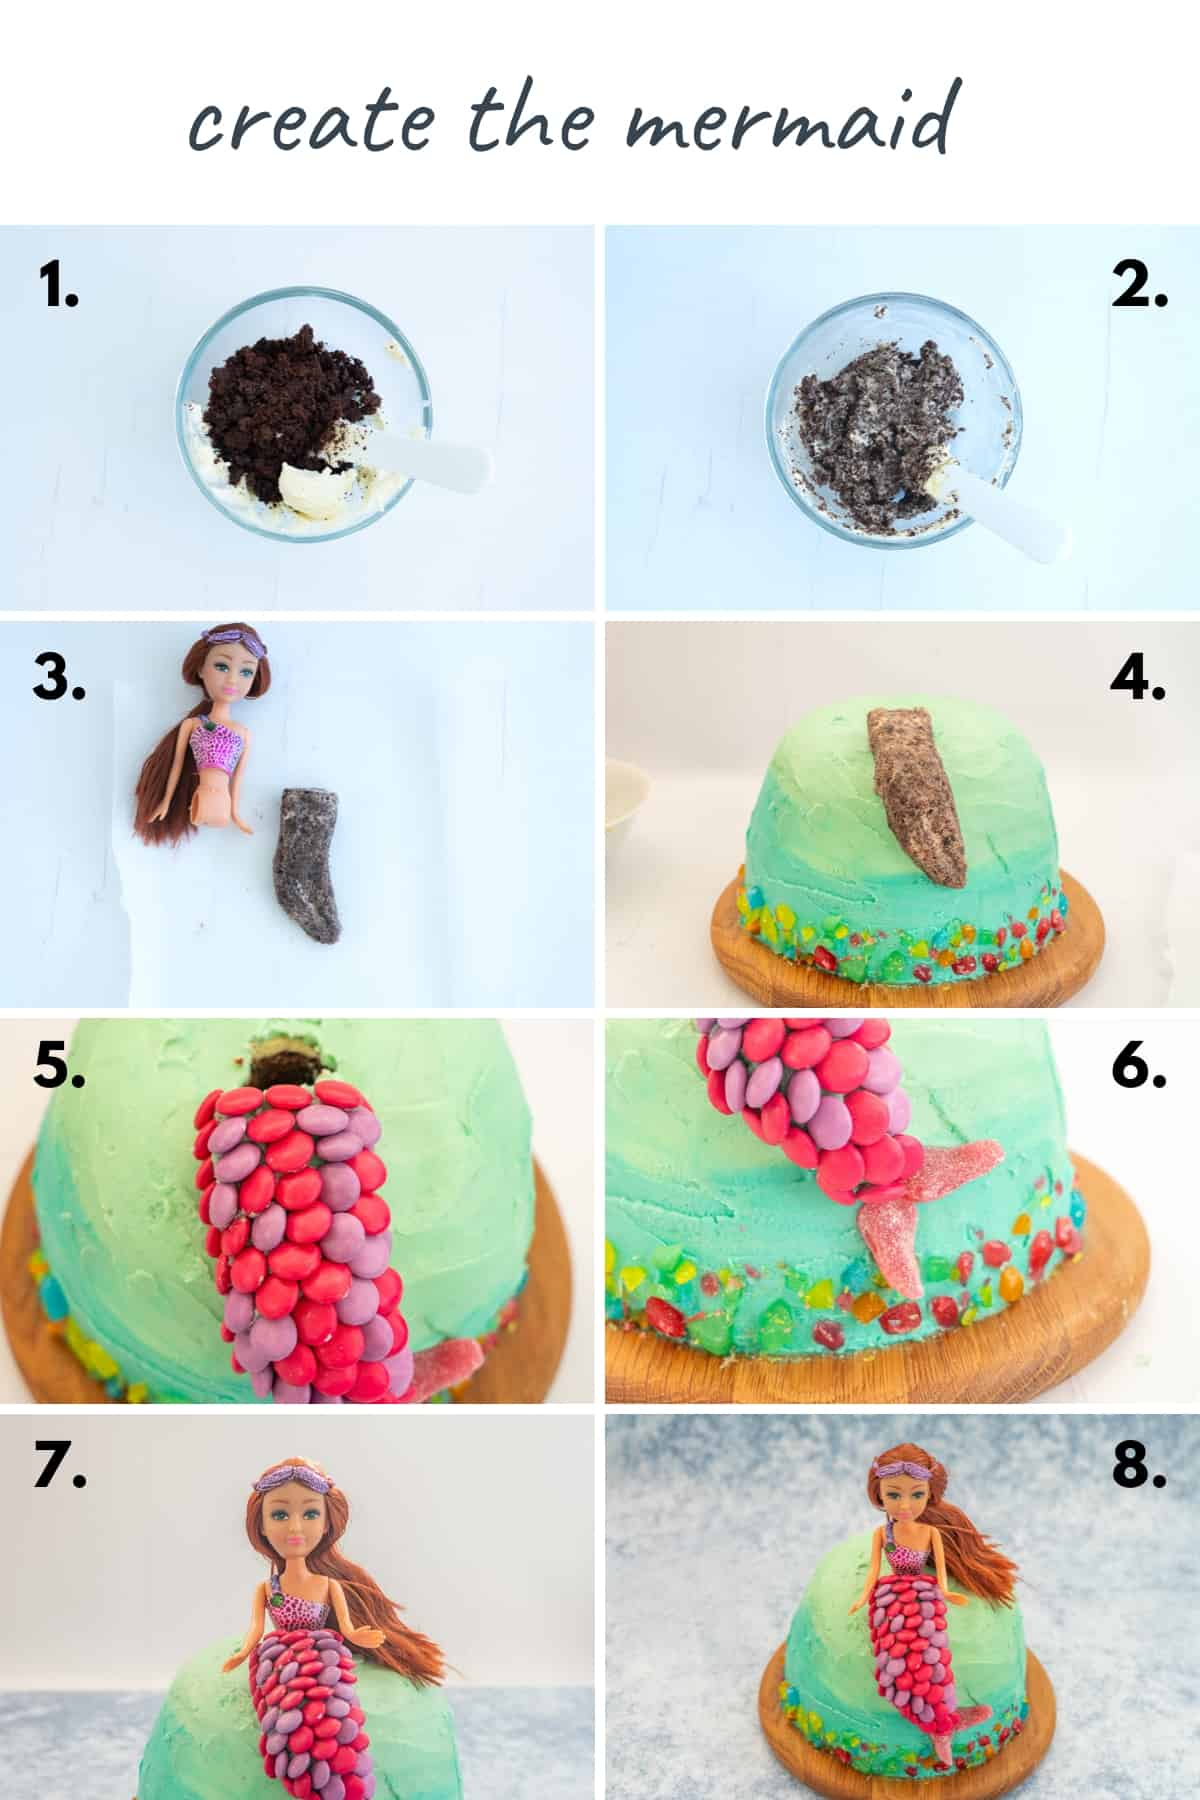 8 photo collage showing the steps to create the mermaid cake topper